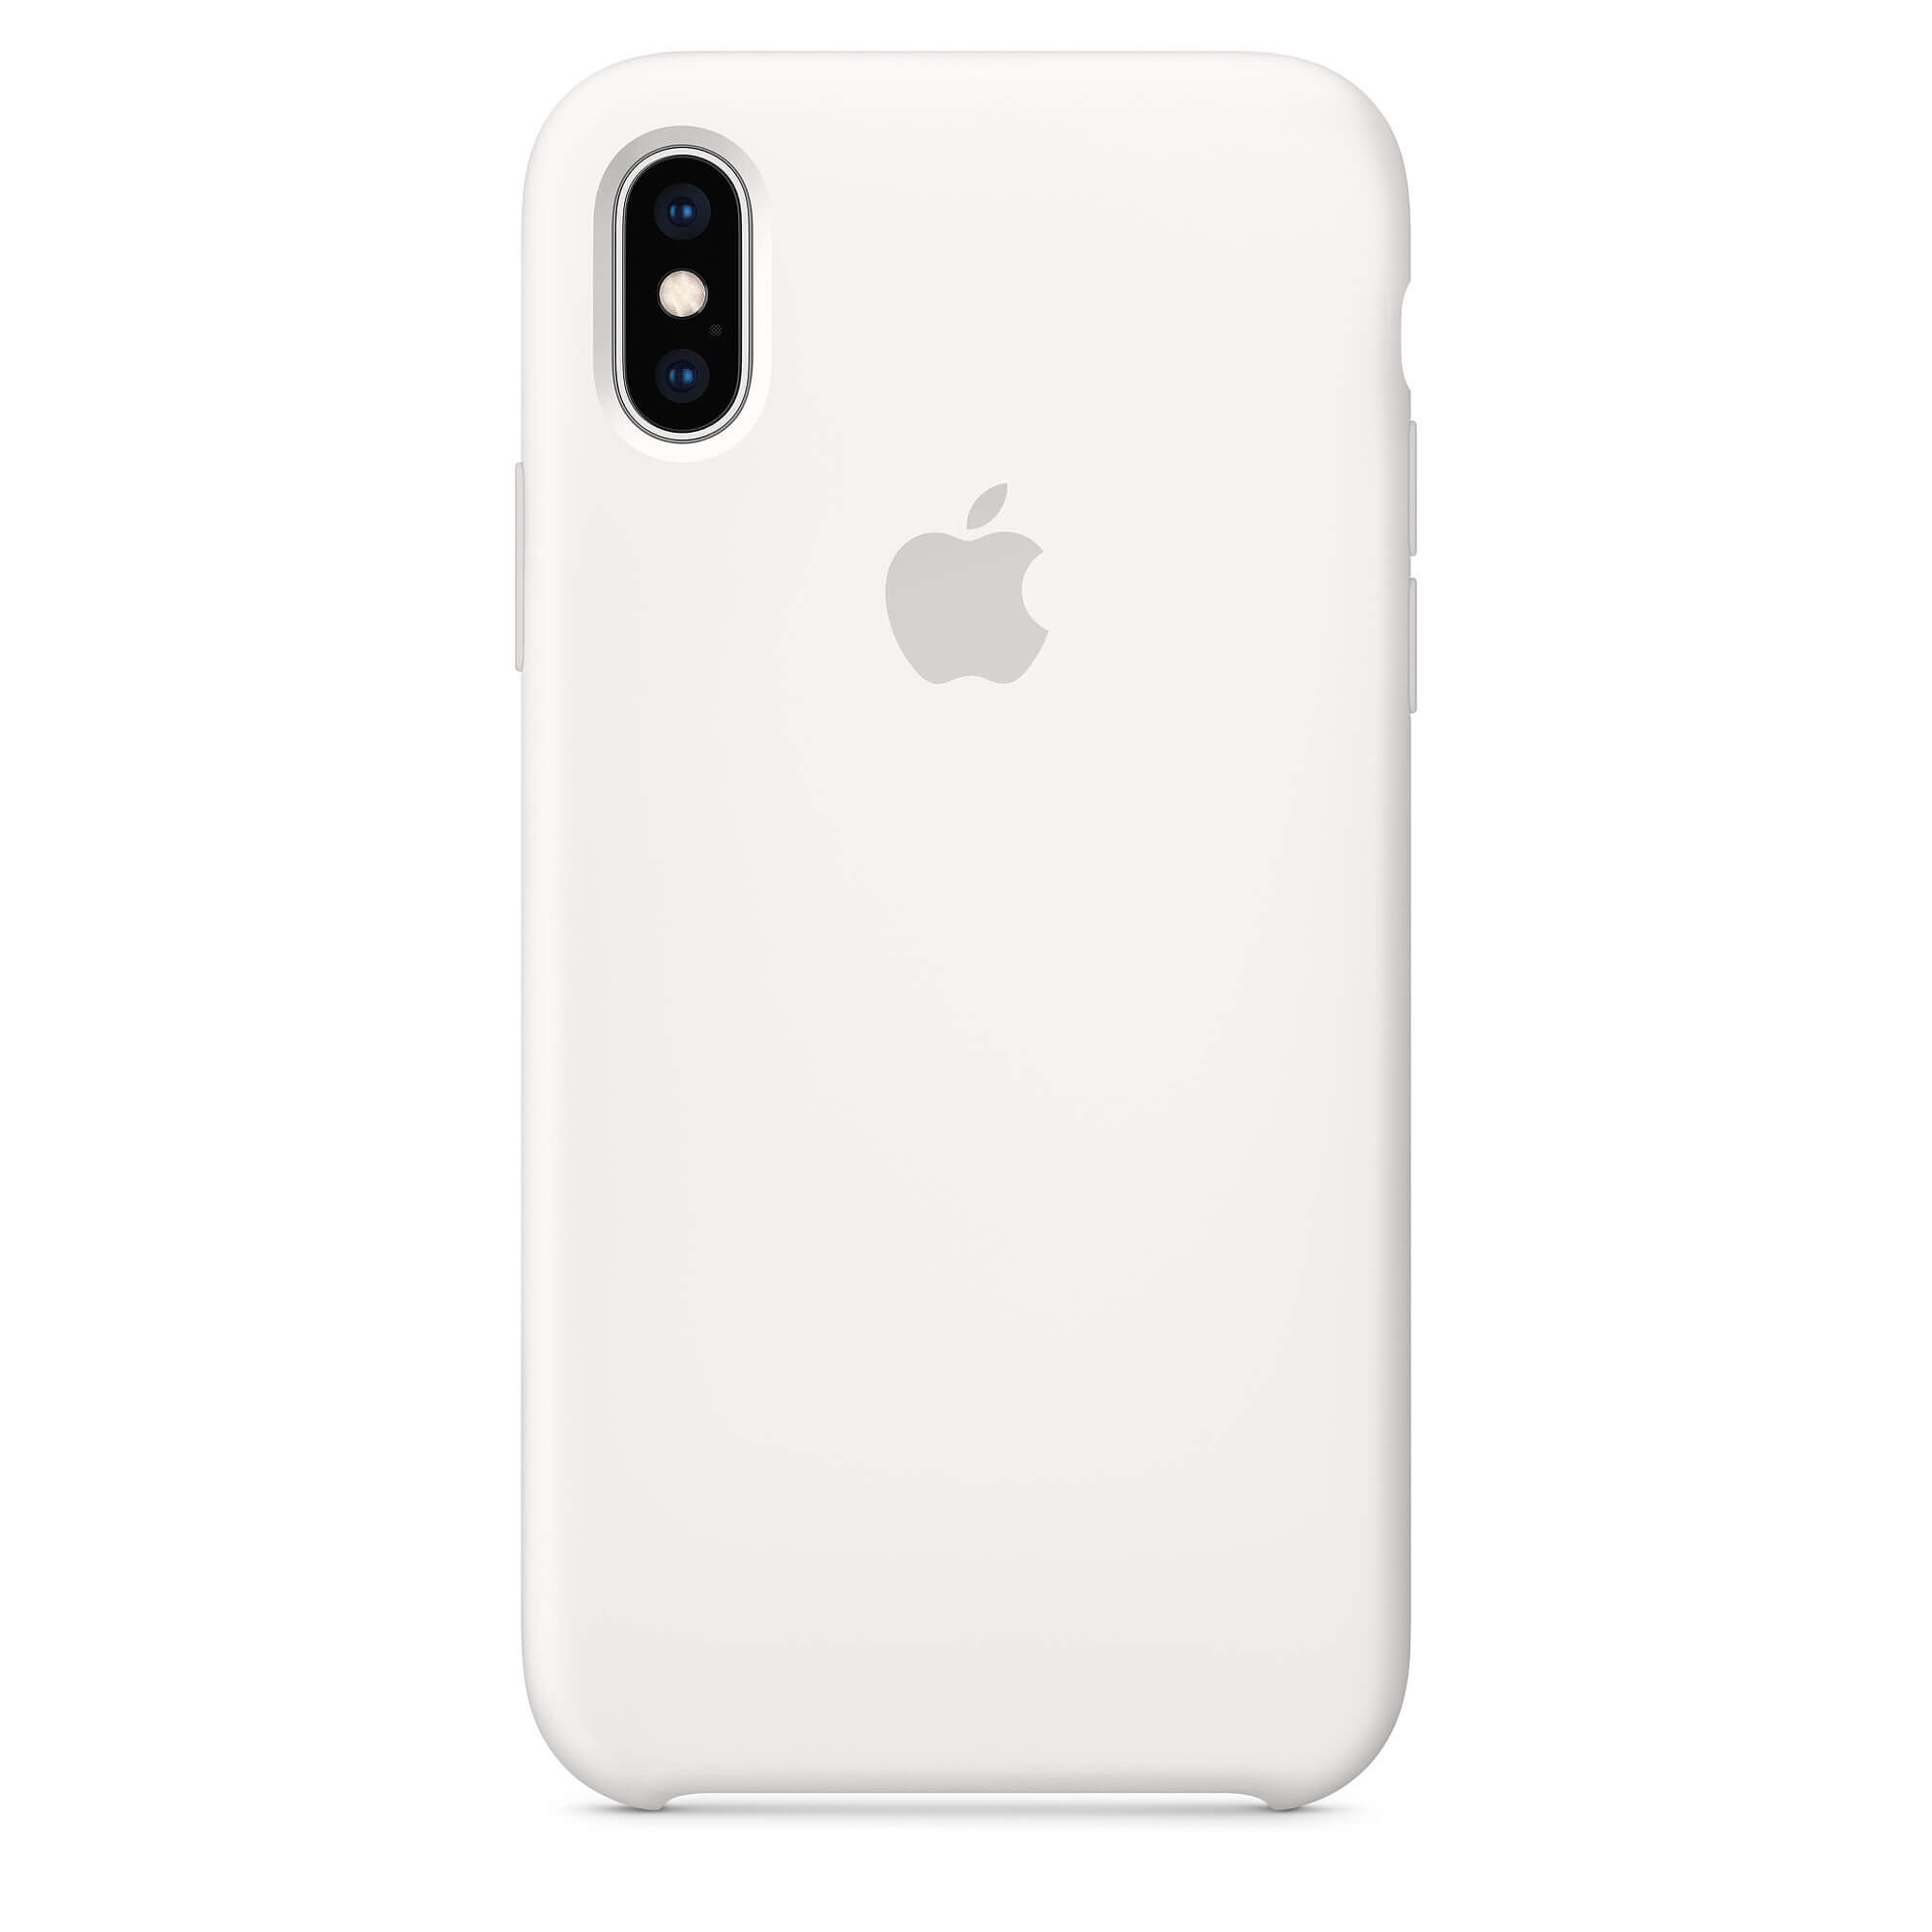 9decbf15a87127 Apple Silicone Case for iPhone XS (white) ...